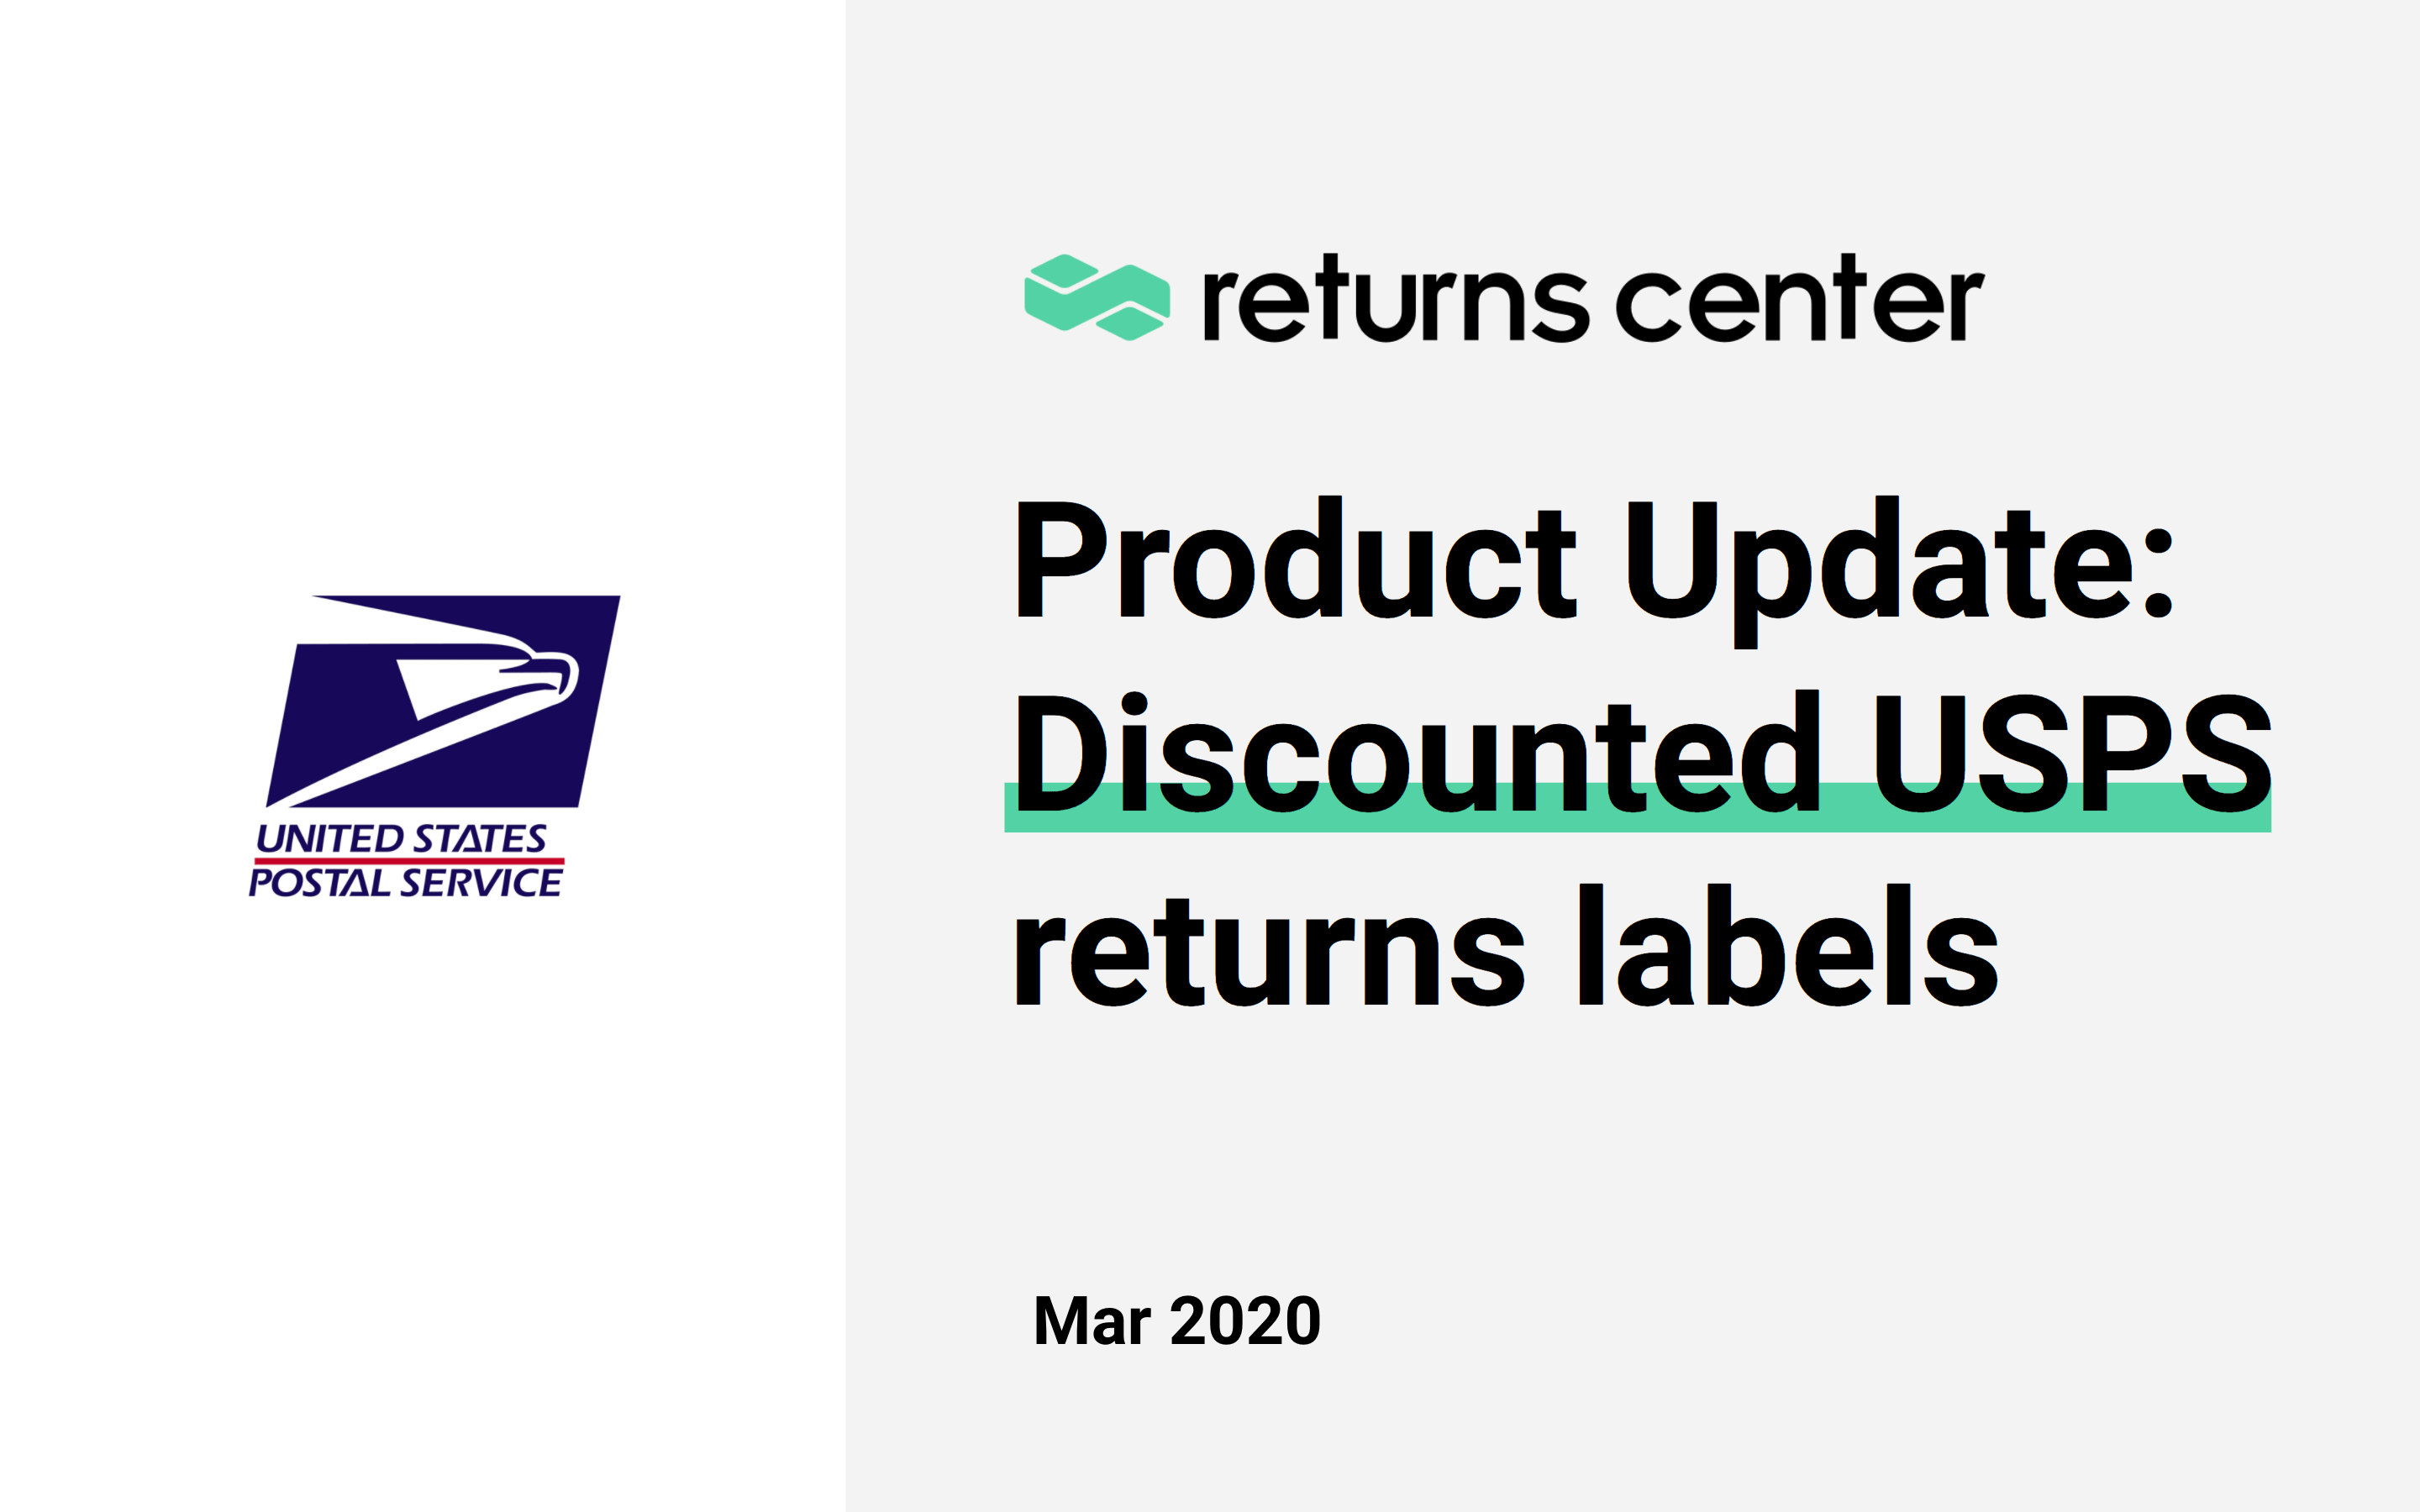 Print discounted USPS returns labels with Returns Center